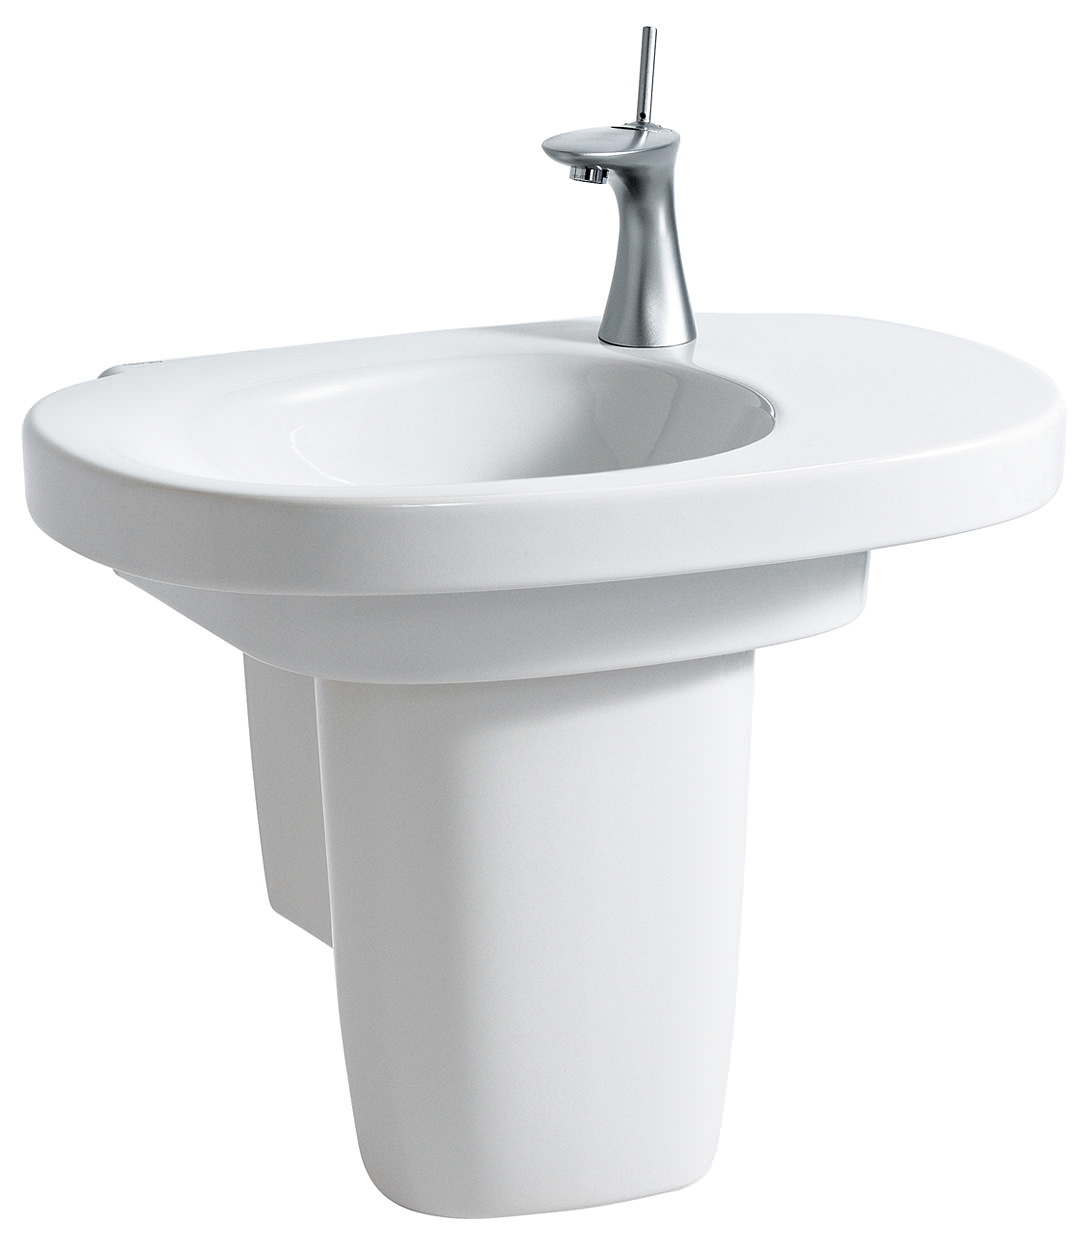 laufen mimo asymmetrical washbasin 650 x 440mm with no tap. Black Bedroom Furniture Sets. Home Design Ideas